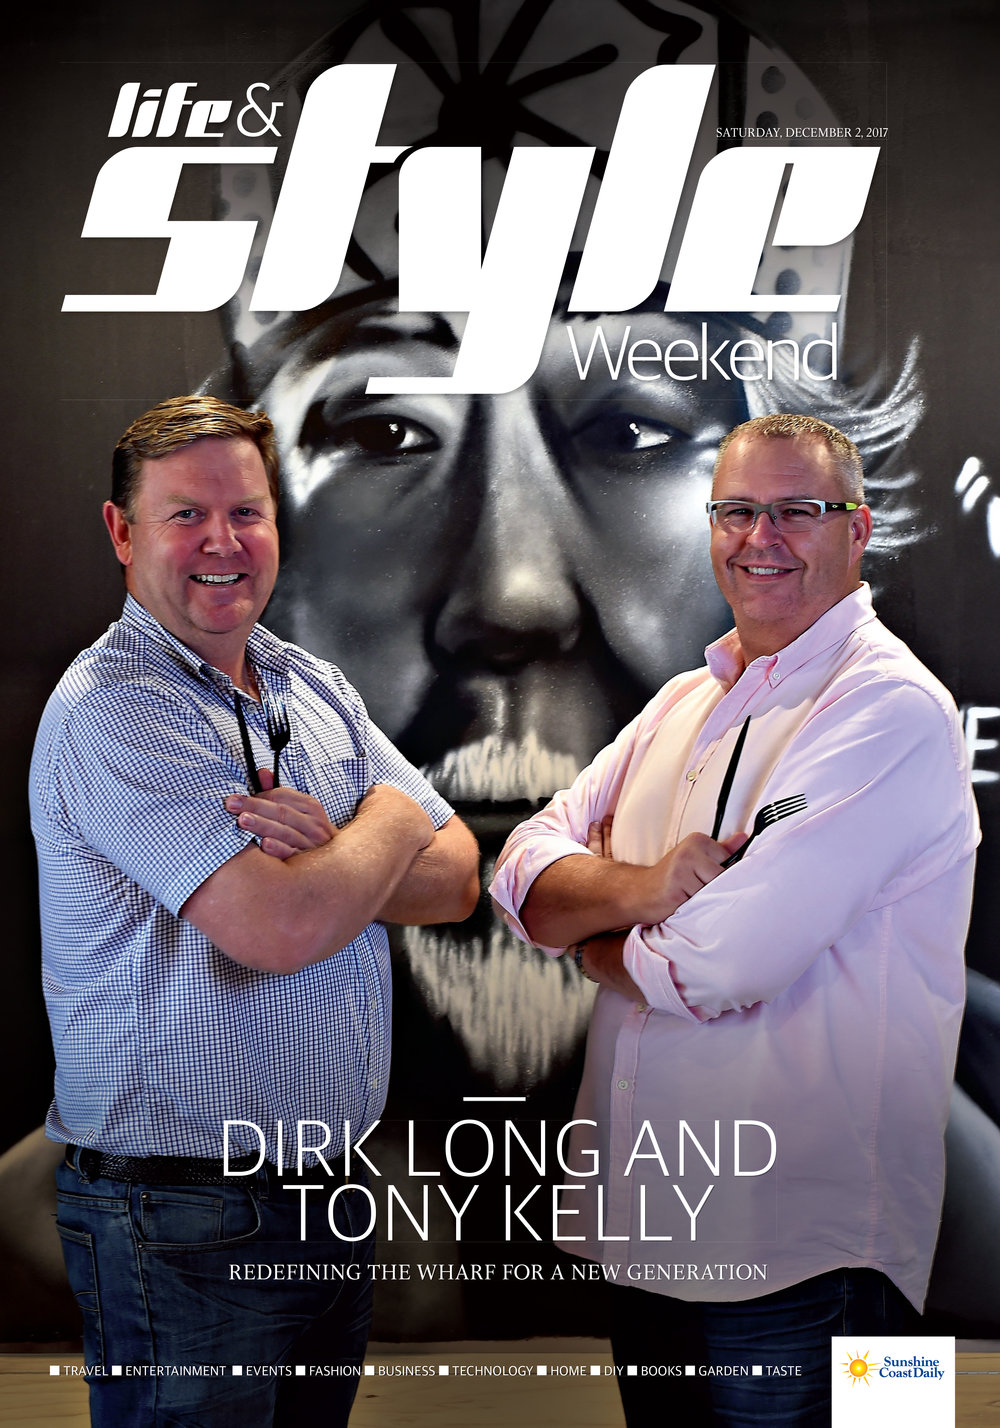 Dirk Long and Tony Kelly - redefining The Wharf for a new generation